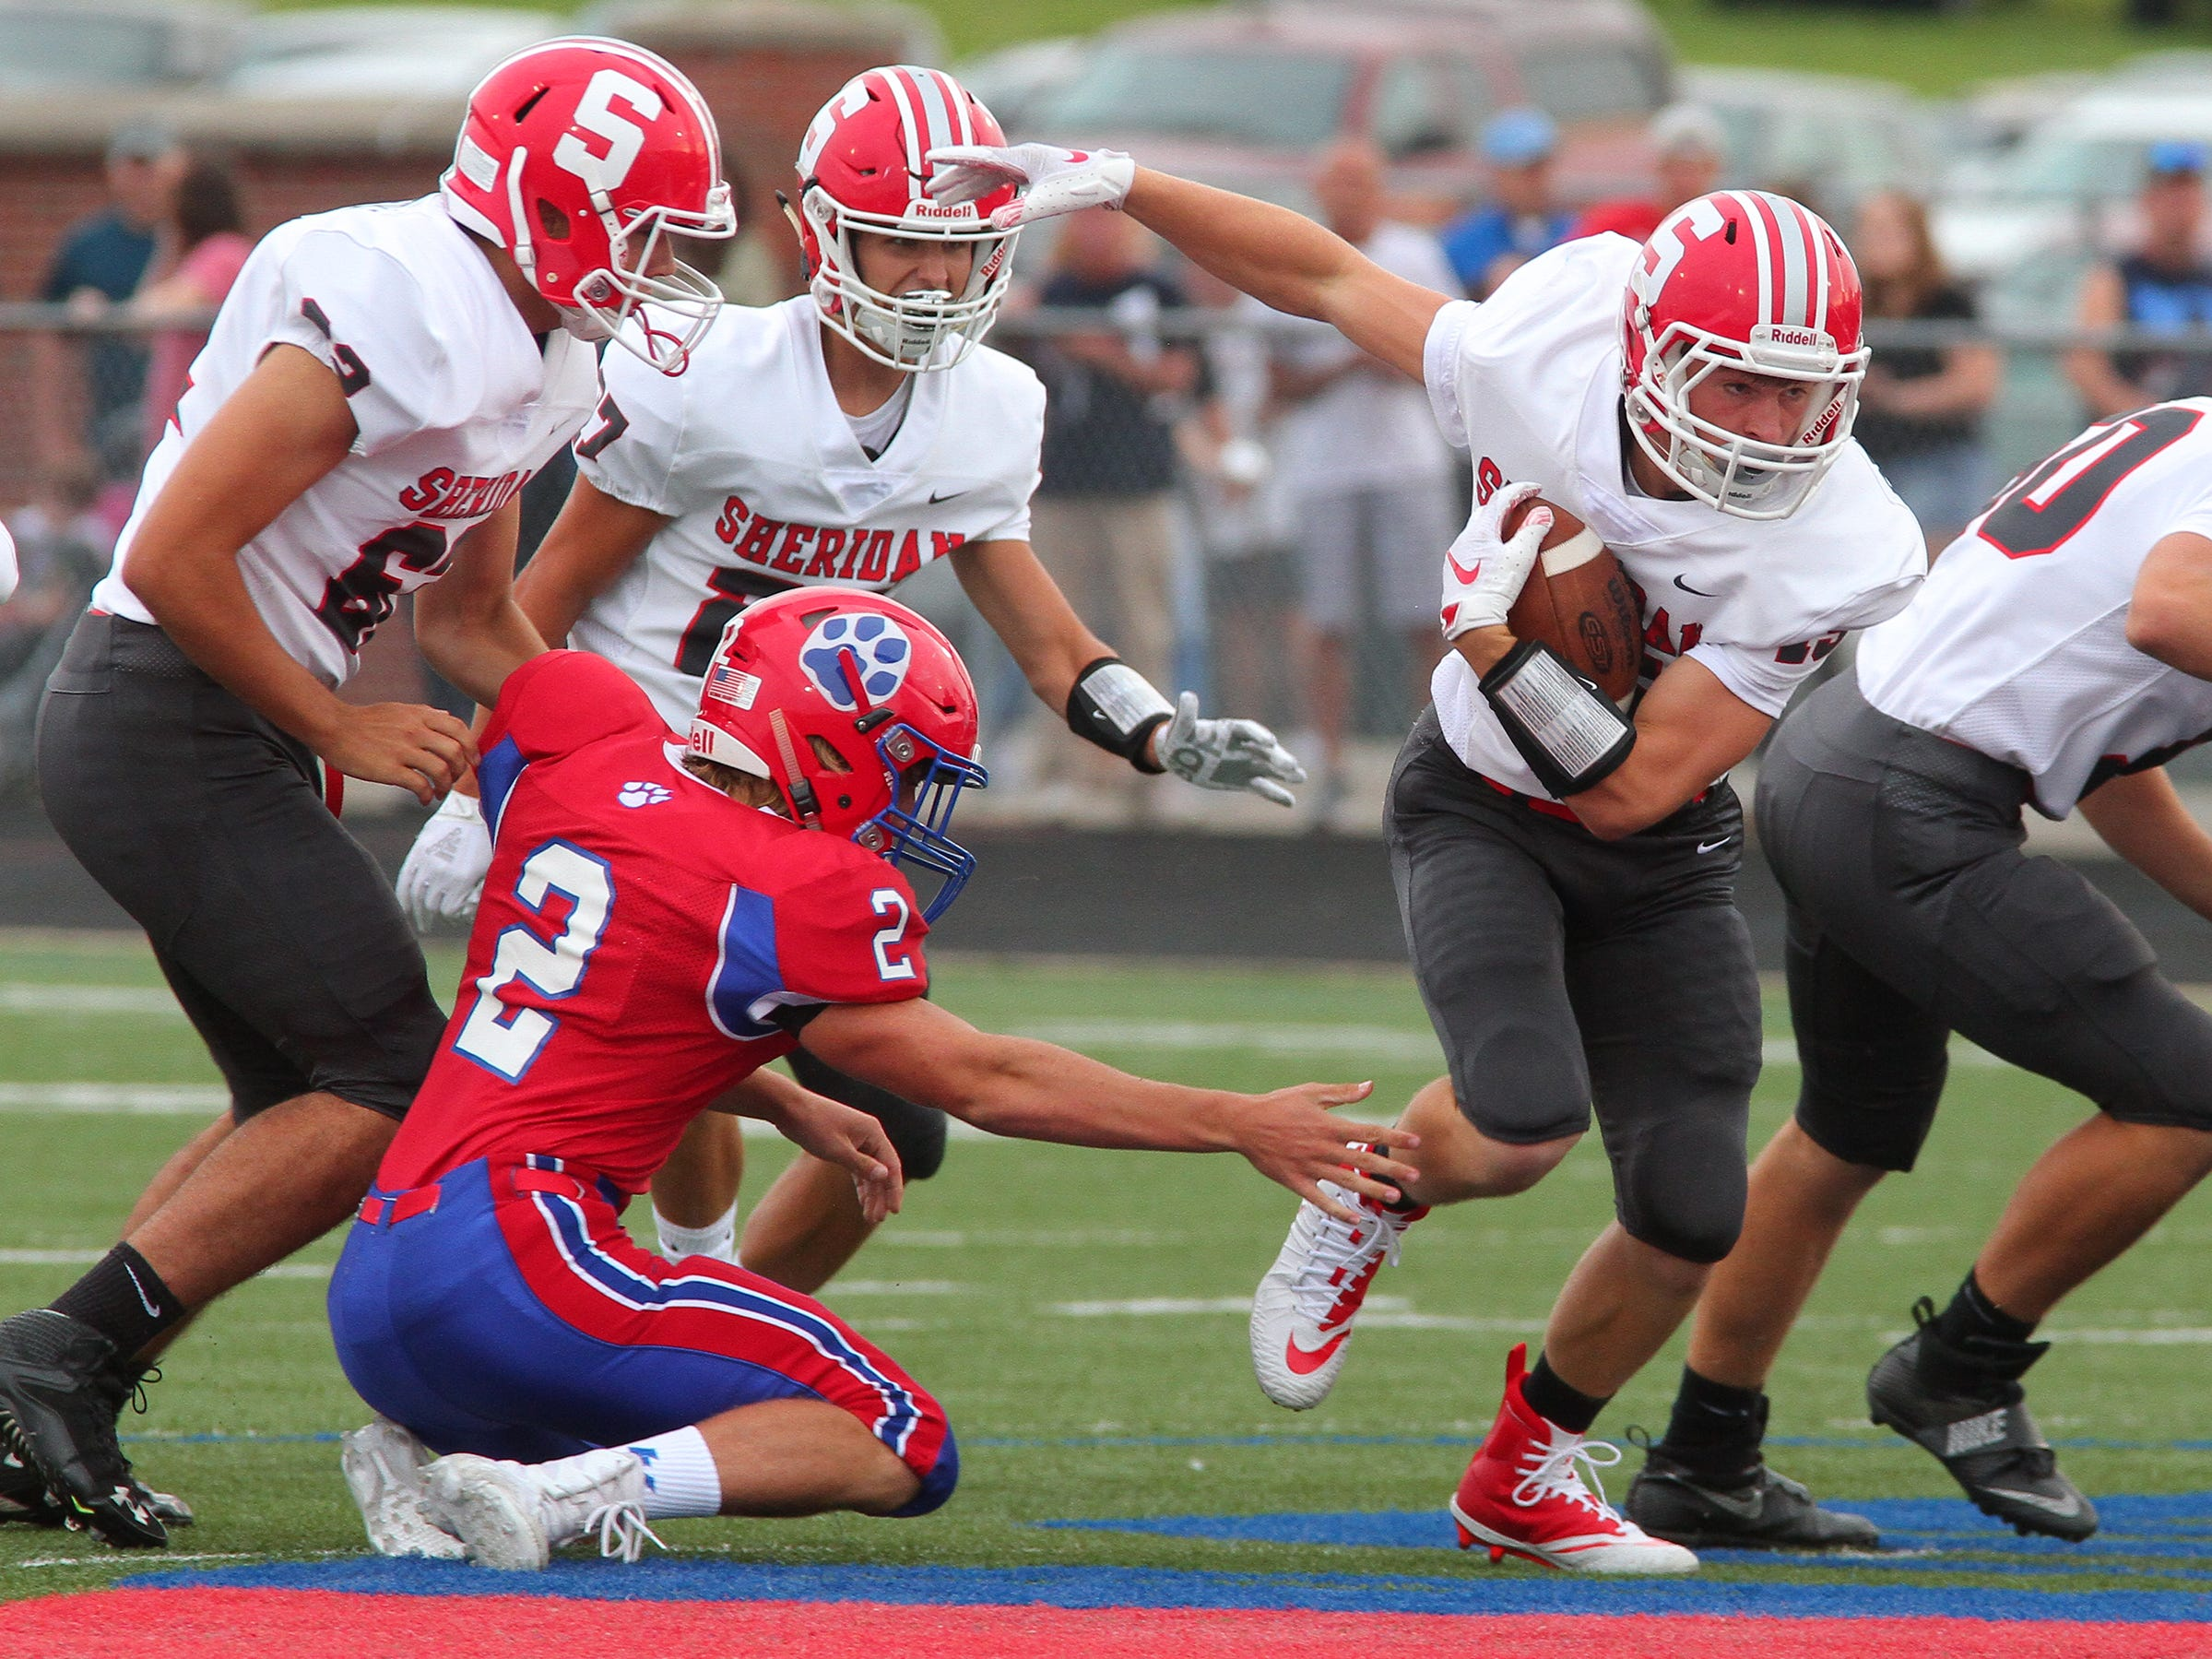 The Generals beat the Panthers 36-21, Friday, during the teams' season opener at Licking Valley.